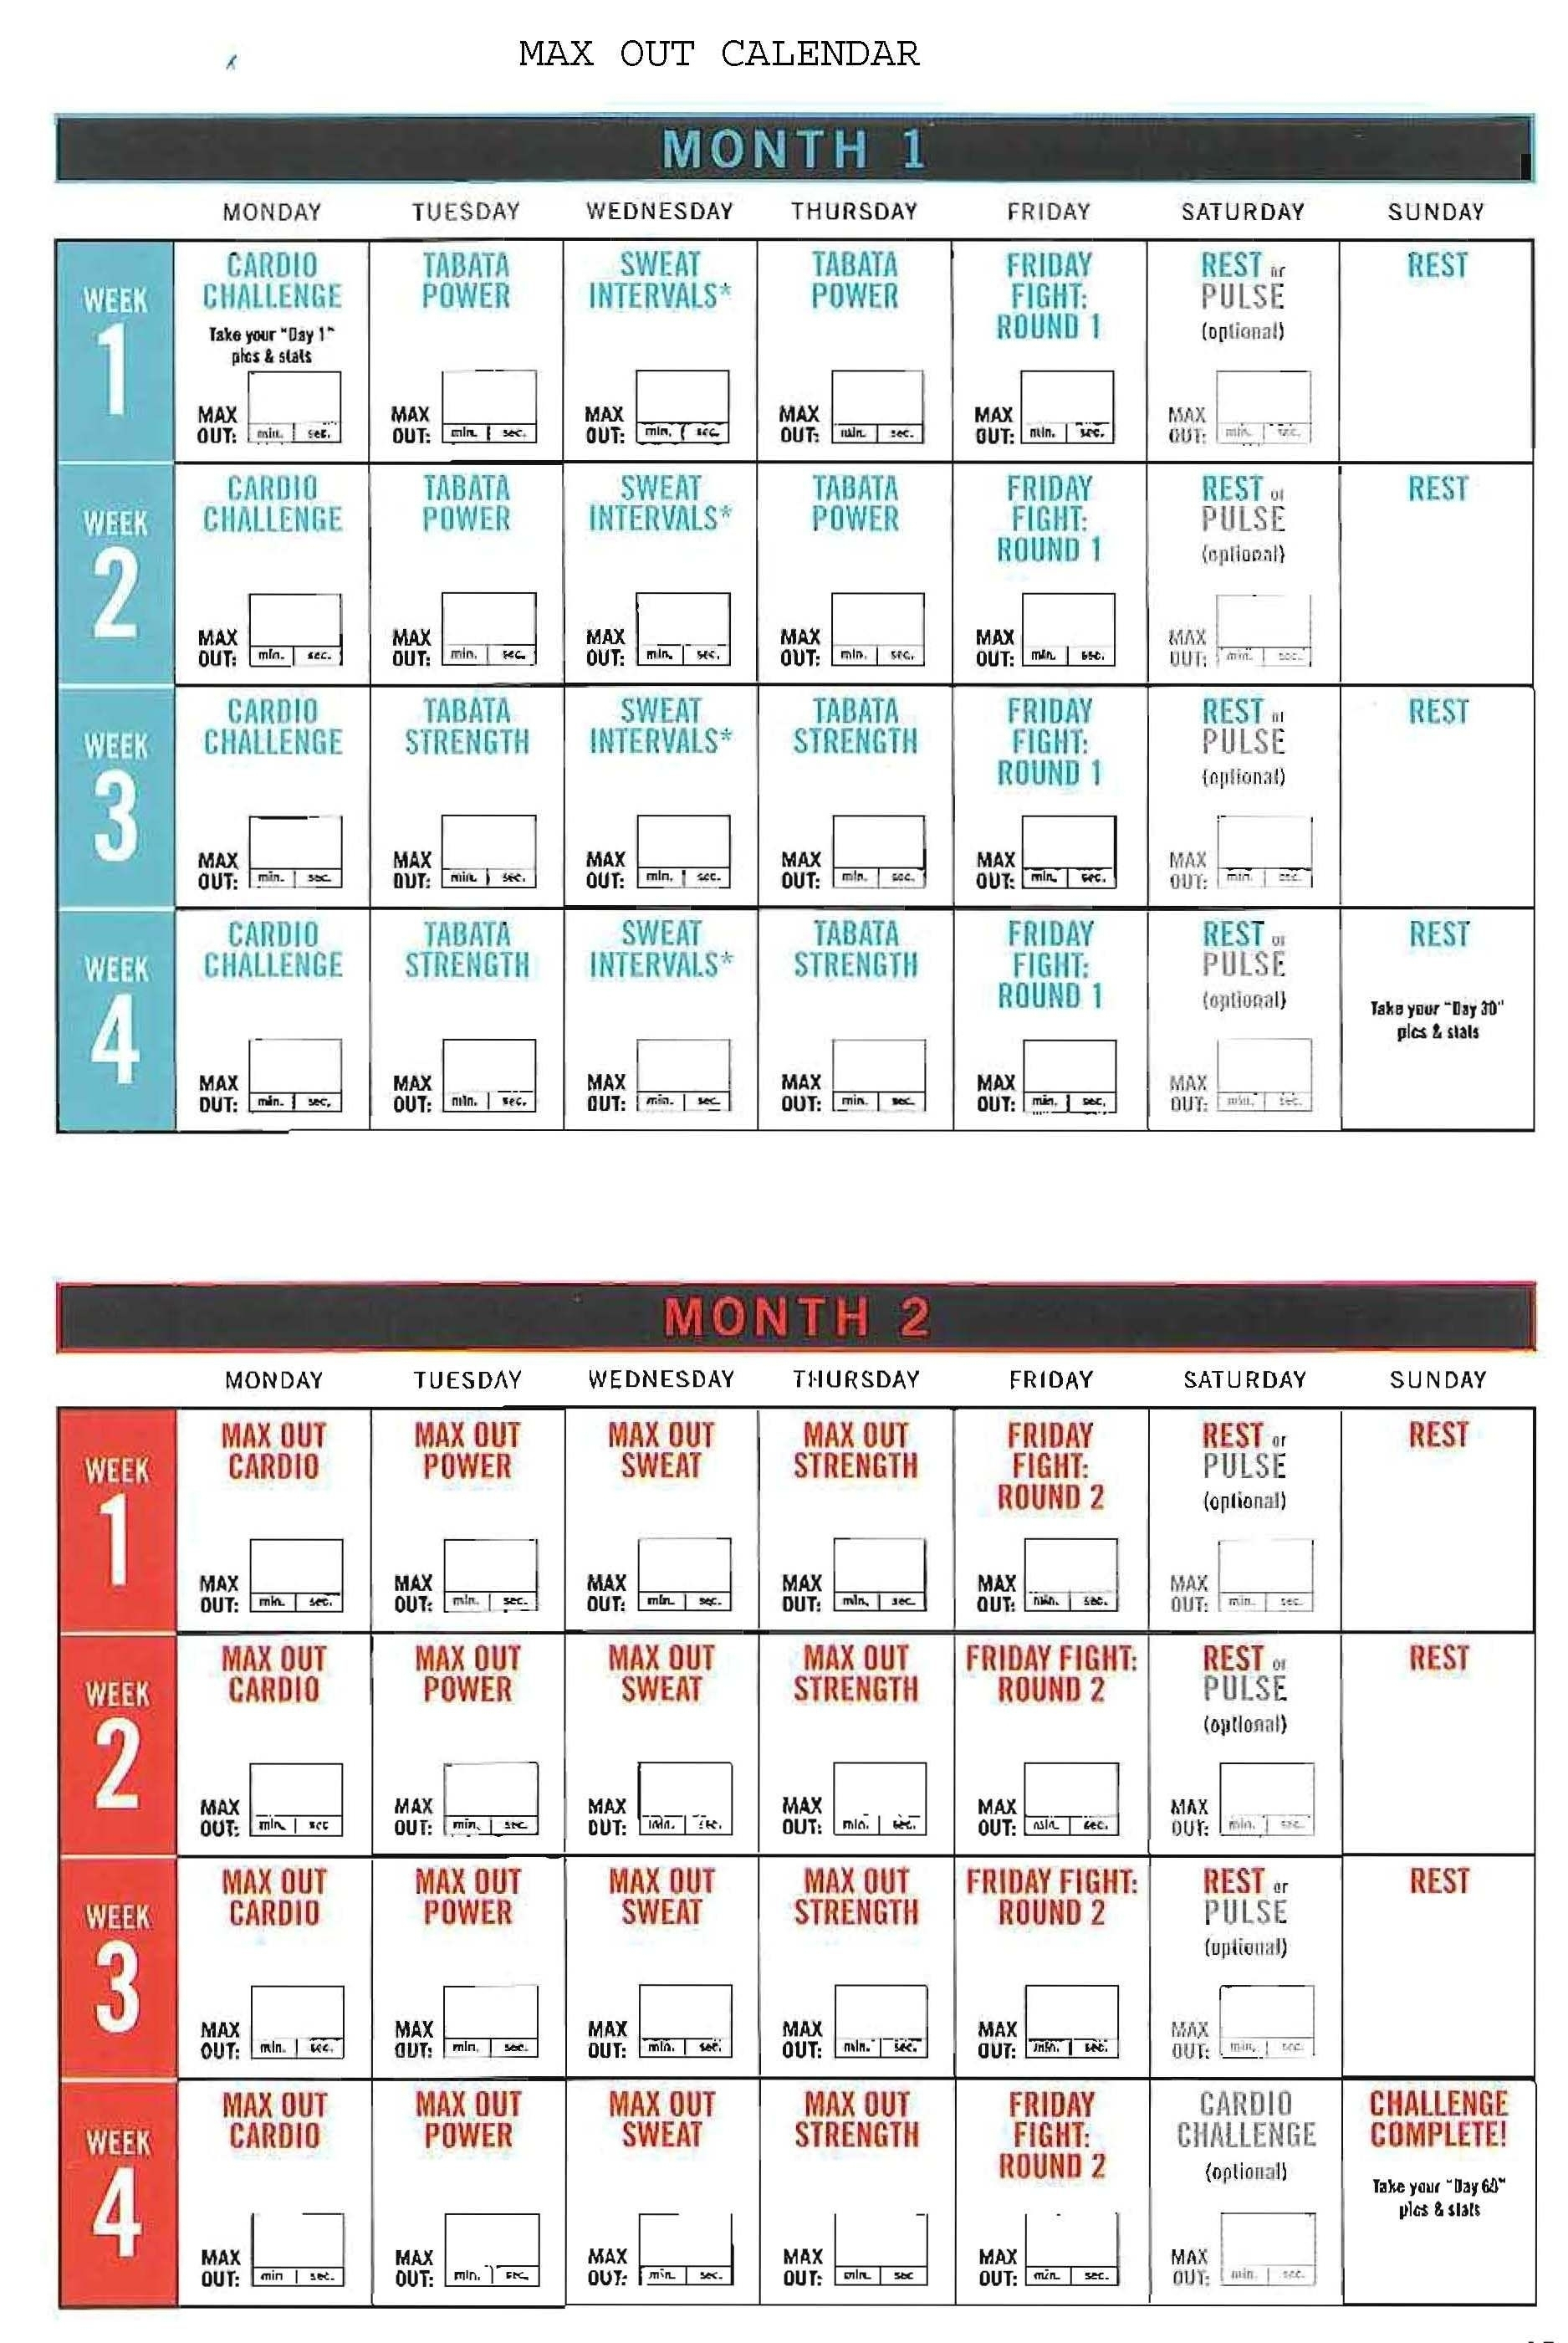 Insanity Calendar Print Out | Monthly Printable Calender with Max 30 Calendar